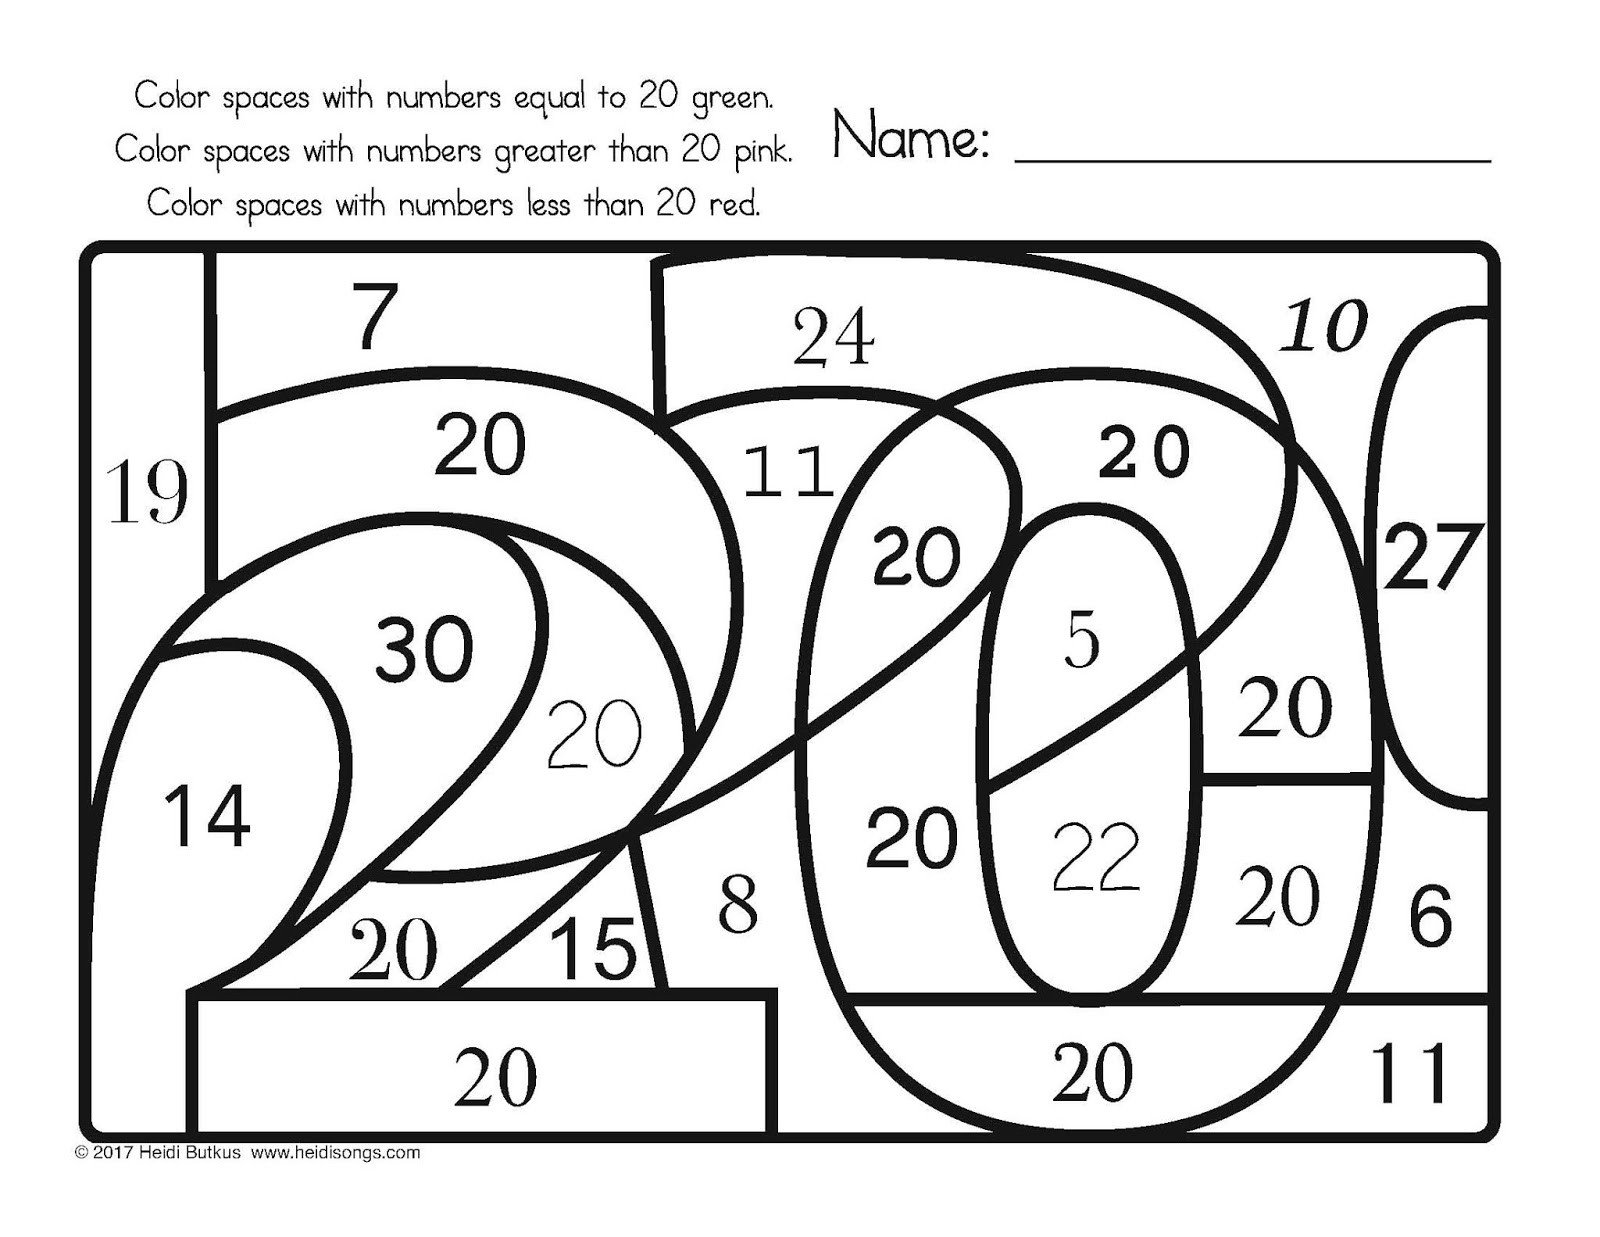 Opposites Preschool Worksheets Find the Number Worksheets Opposites Preschool From